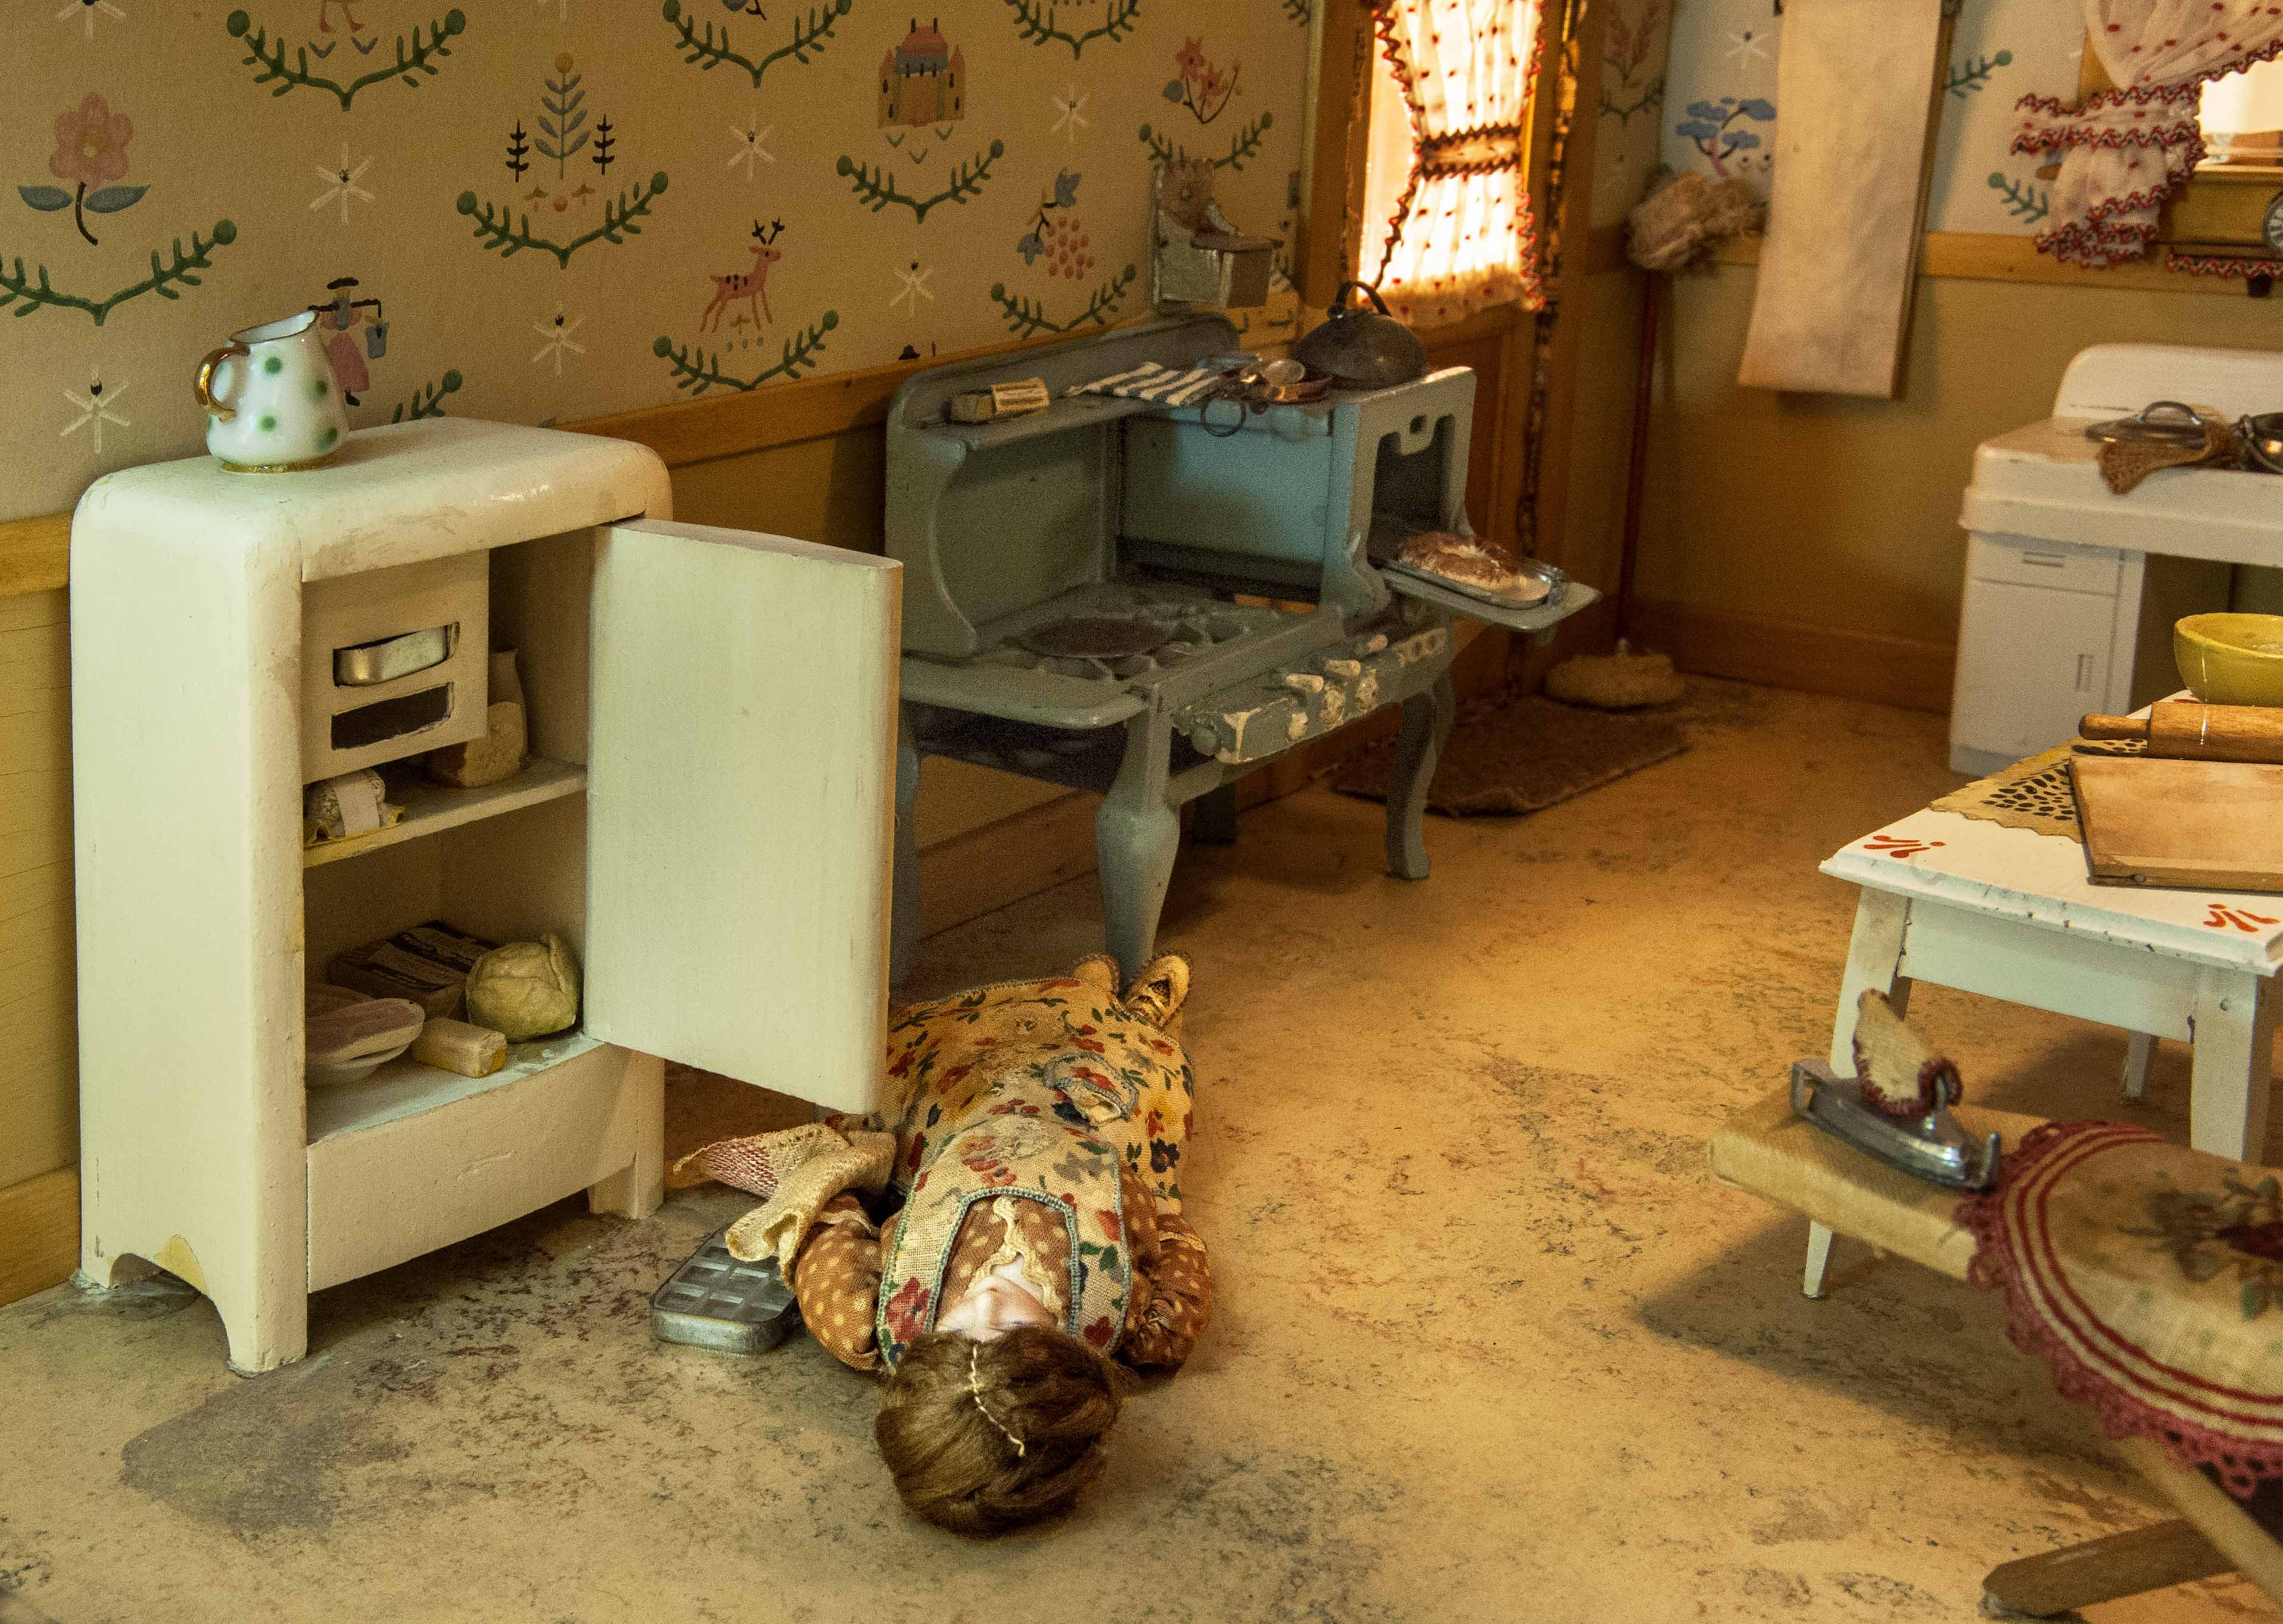 Dollhouse Sized Dioramas Portray Murder And Mystery In